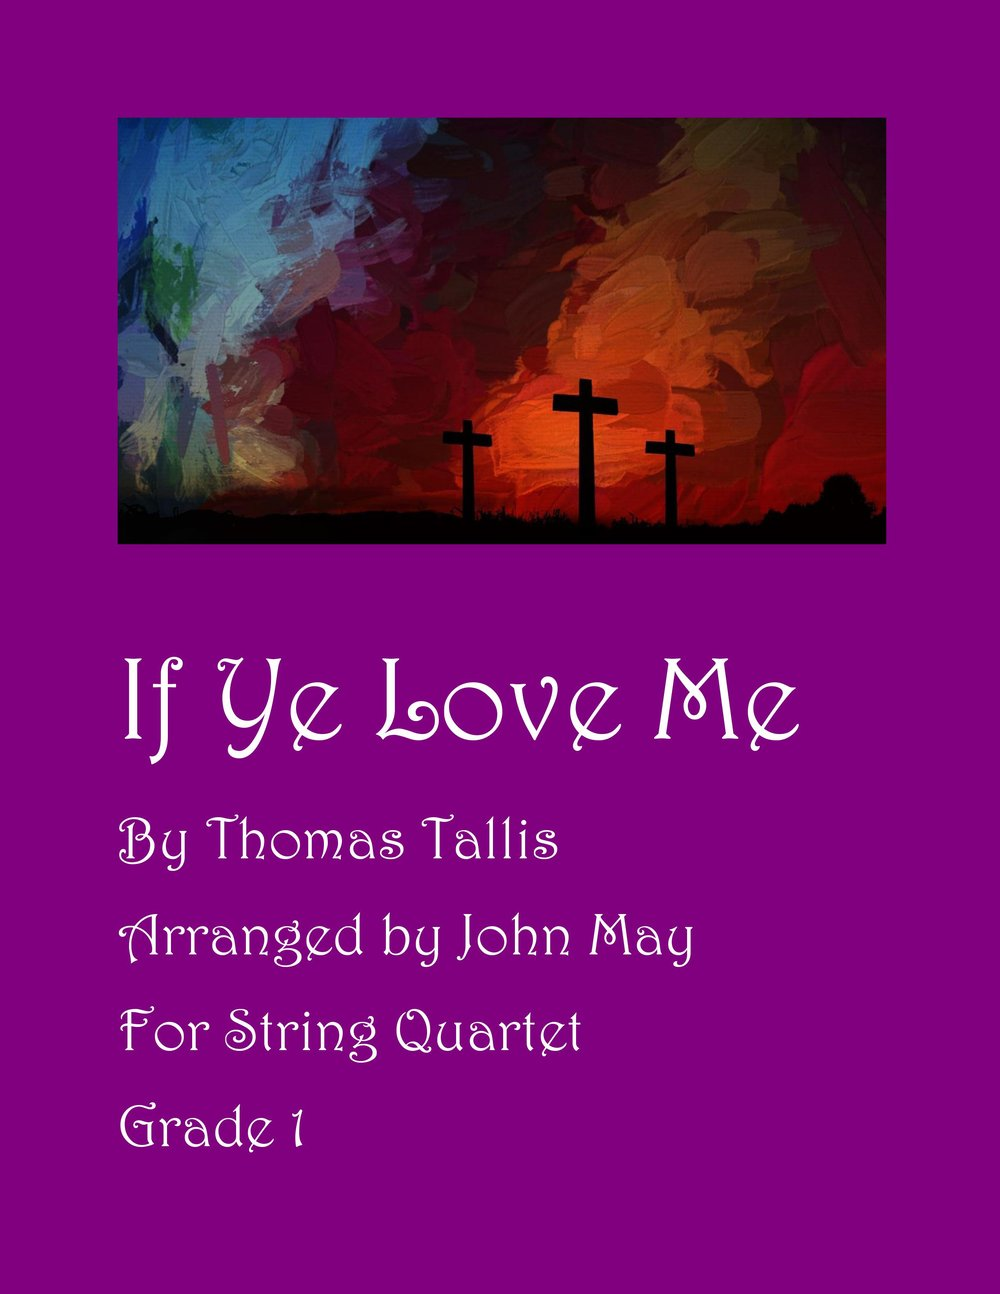 If Ye Love Me-String Quartet-Cover Photo.jpg